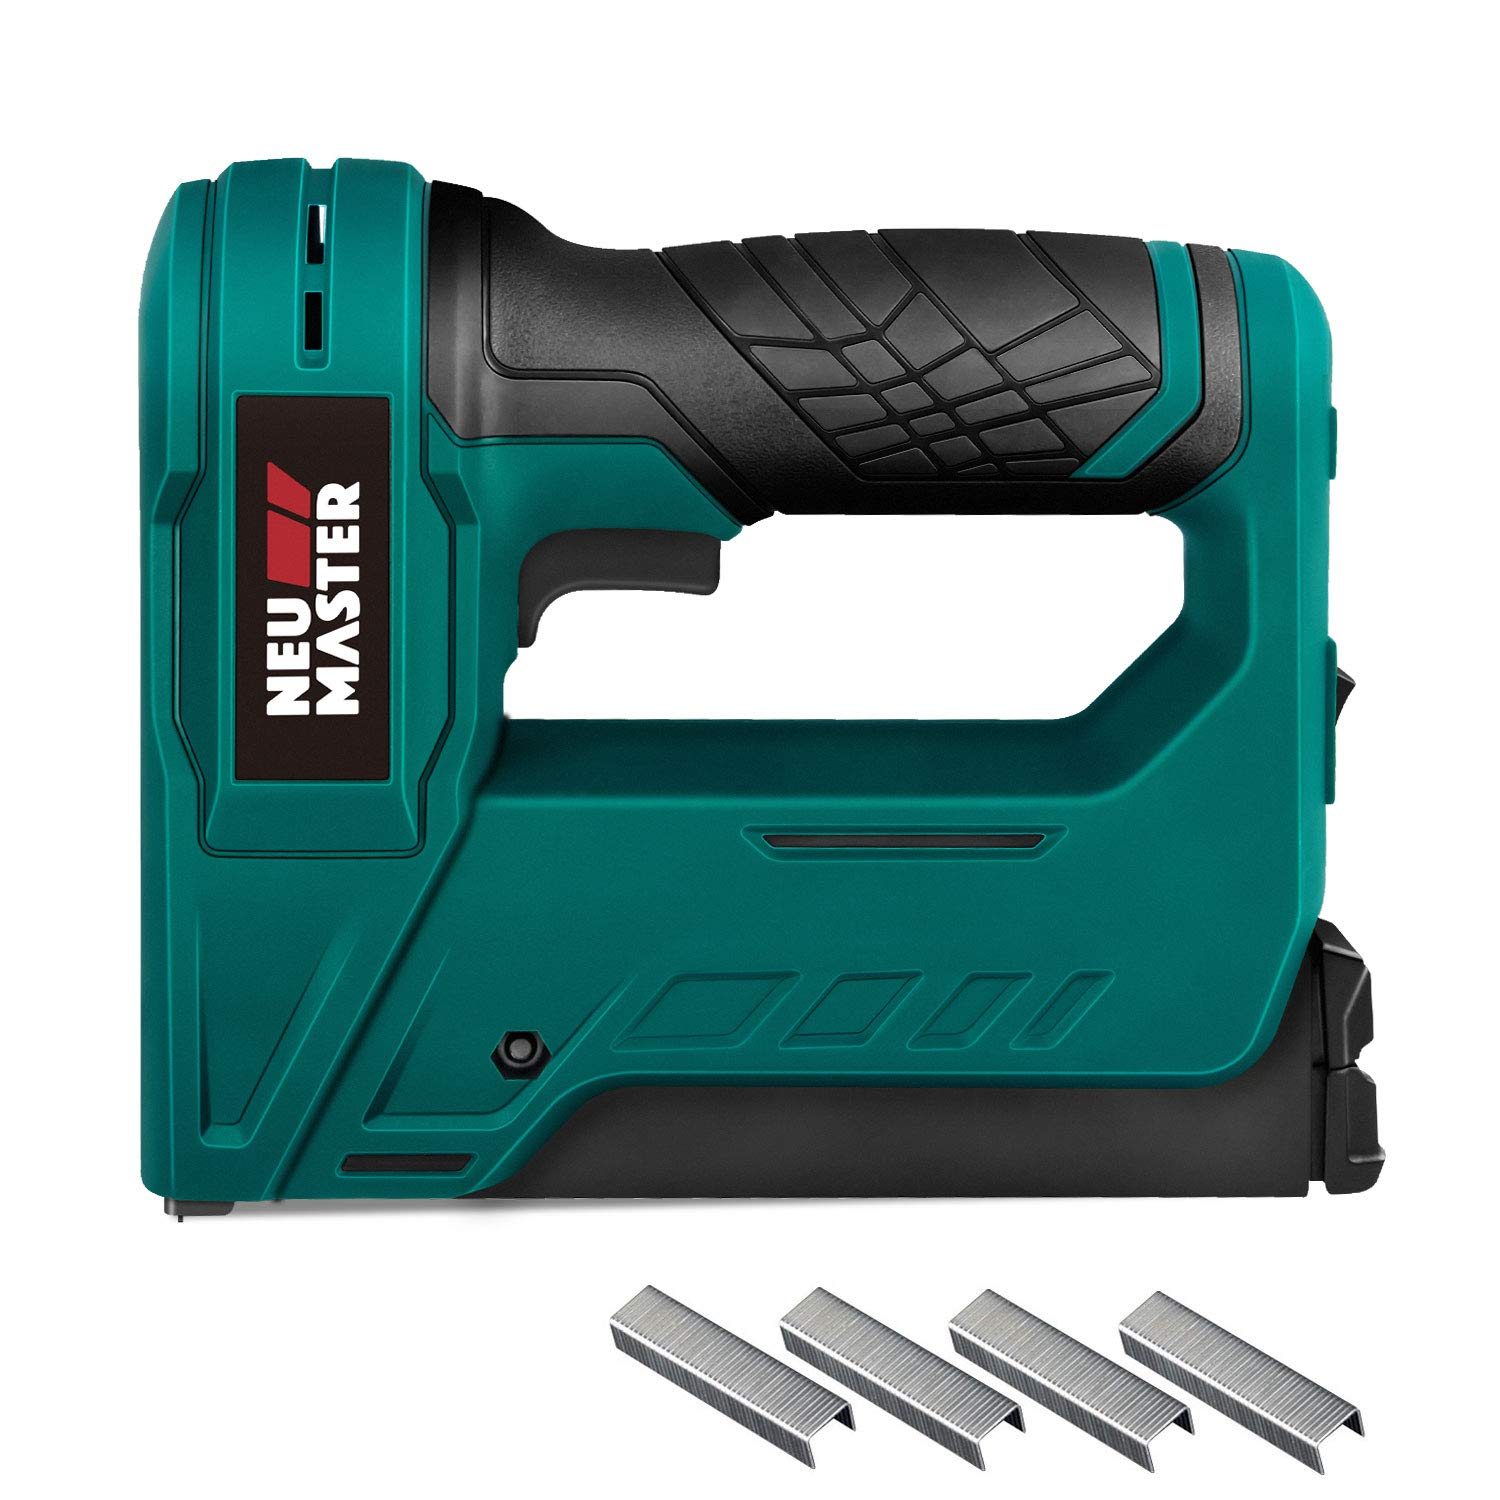 Cordless Staple Gun, NEU MASTER NTC0070 3.6V Li-ion Battery Staple Gun for DIY Small Project of Upholstery, Home Improvement and Woodworking, Including charger and staples by Neu Master